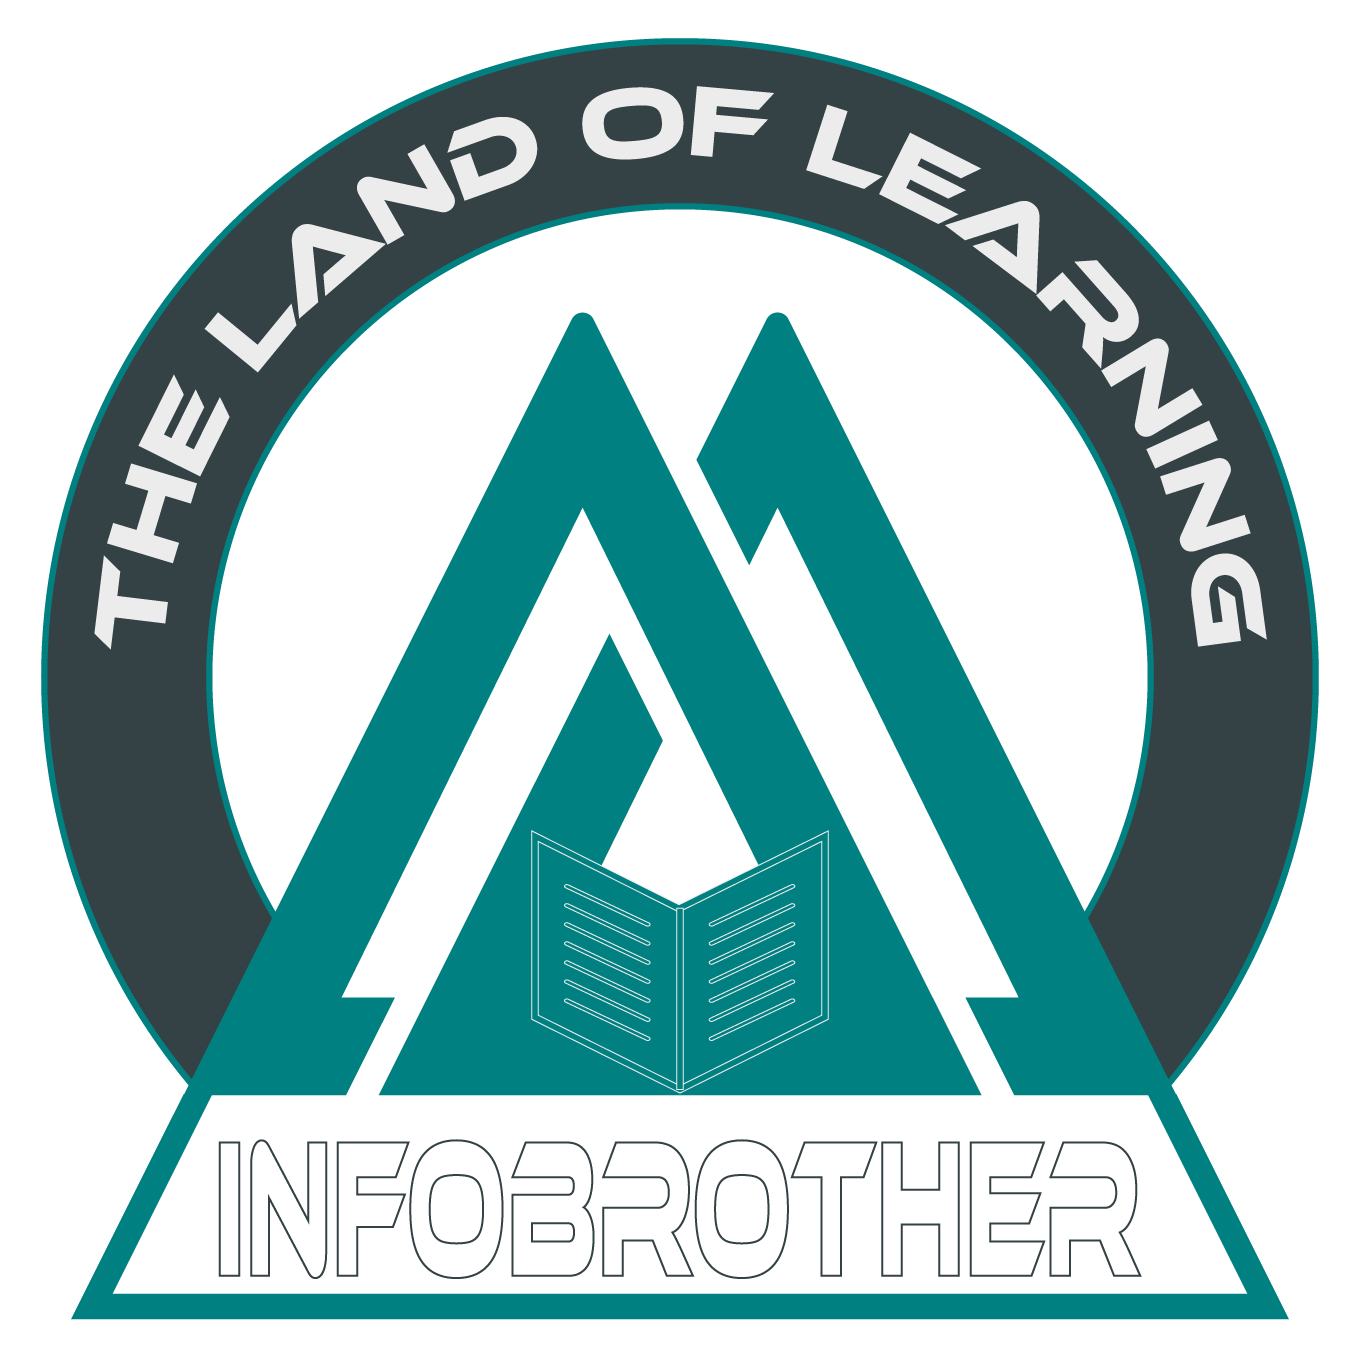 www.infobrother.com - The land of learning.